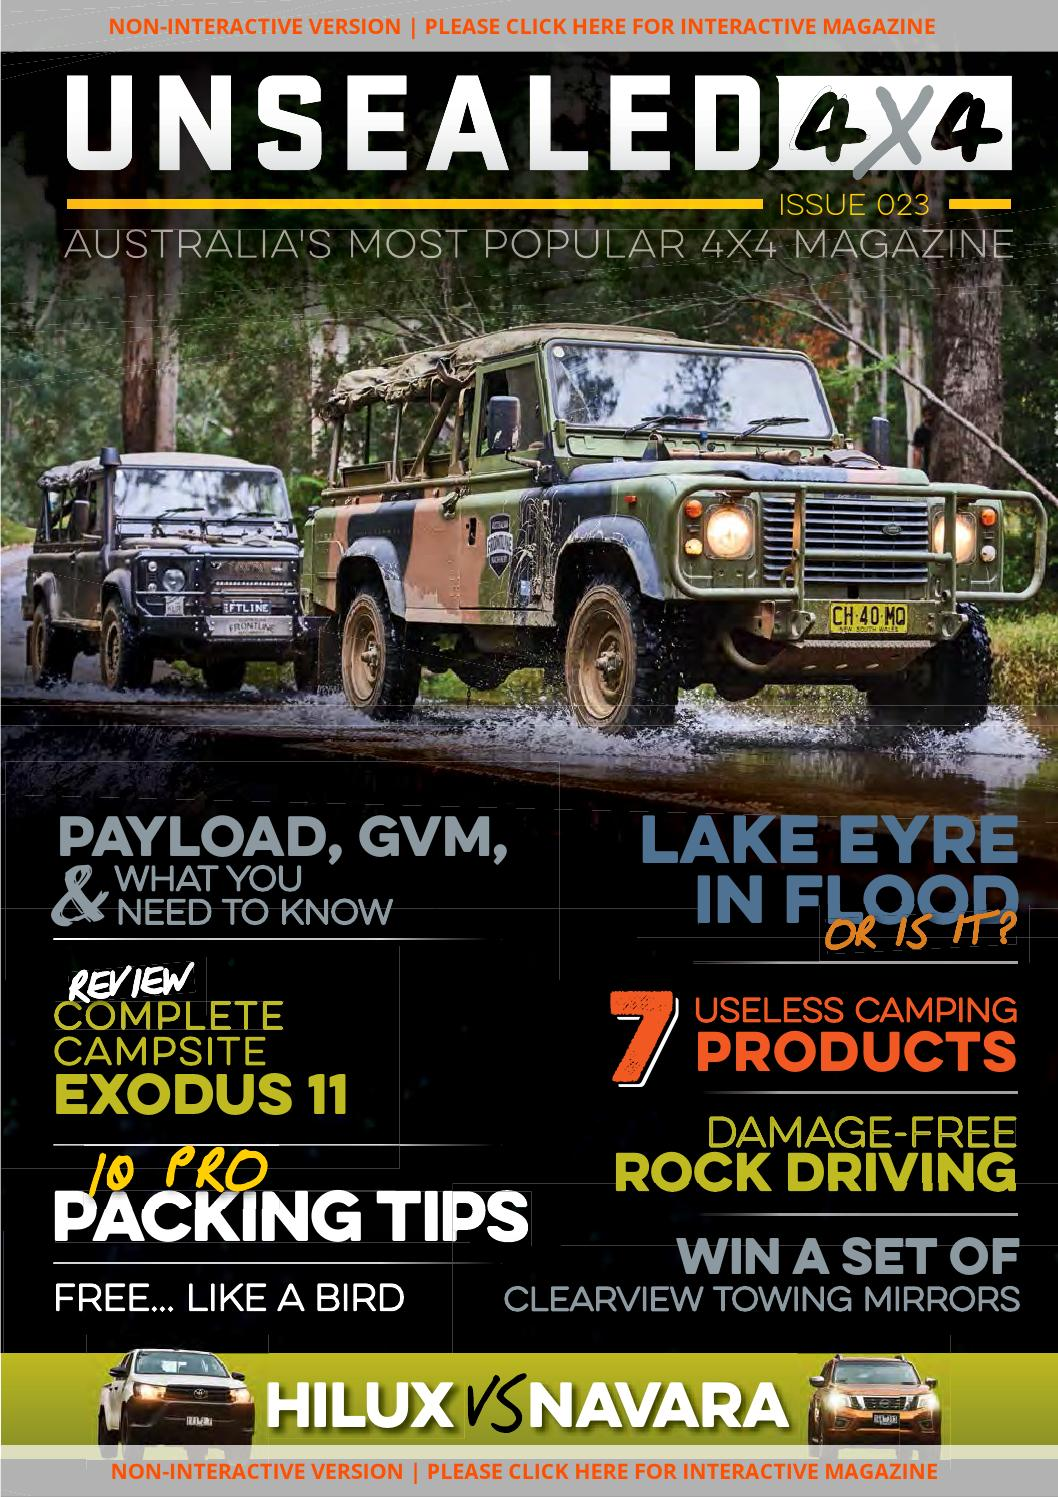 UNSEALED 4X4 ISSUE 023 by UNSEALED 4X4 - issuu